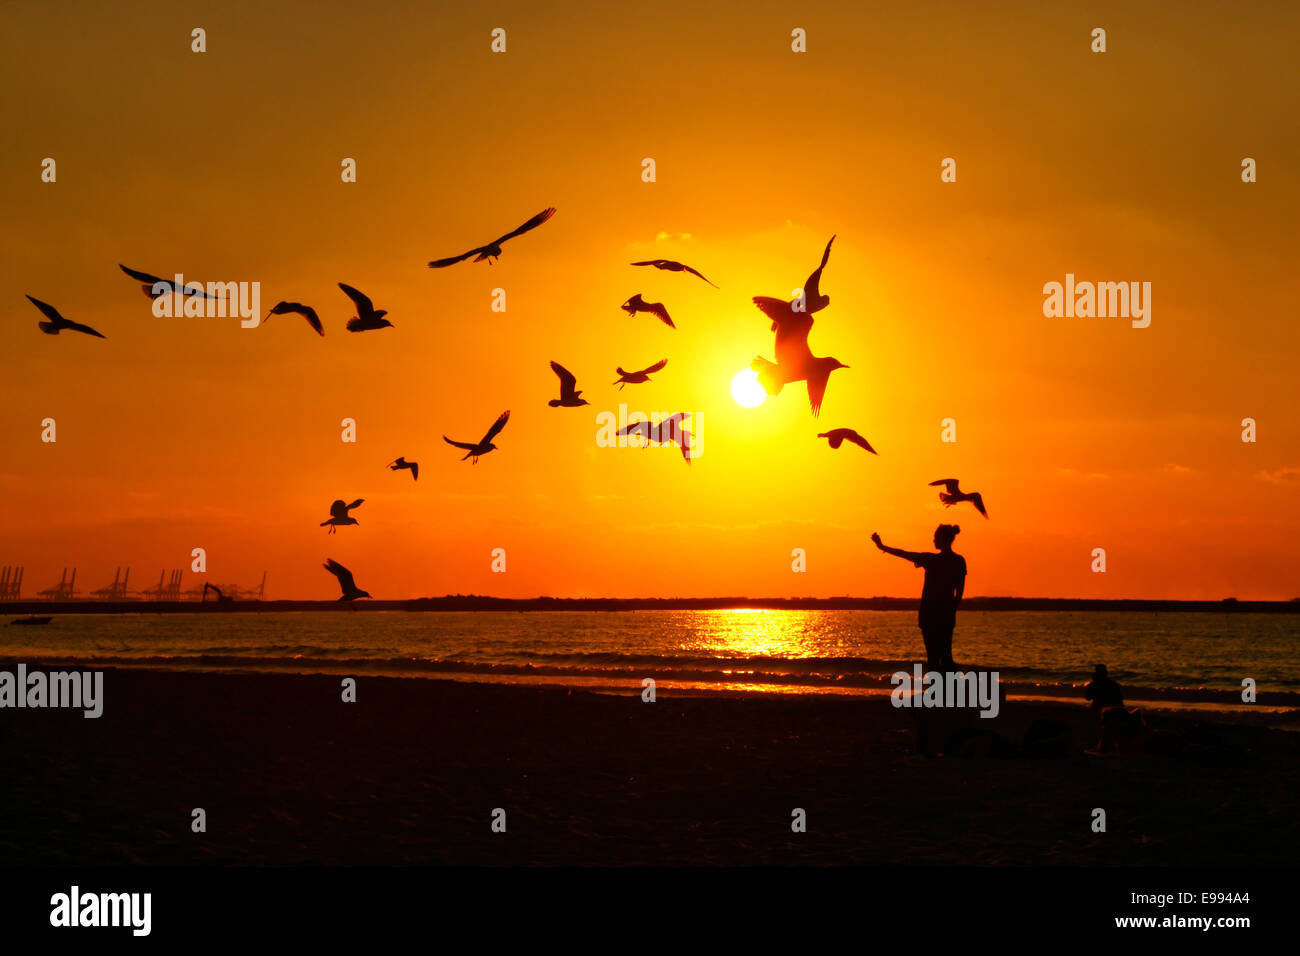 Female feeding birds at sunset on the  Jumeirah beach in Dubai - Stock Image